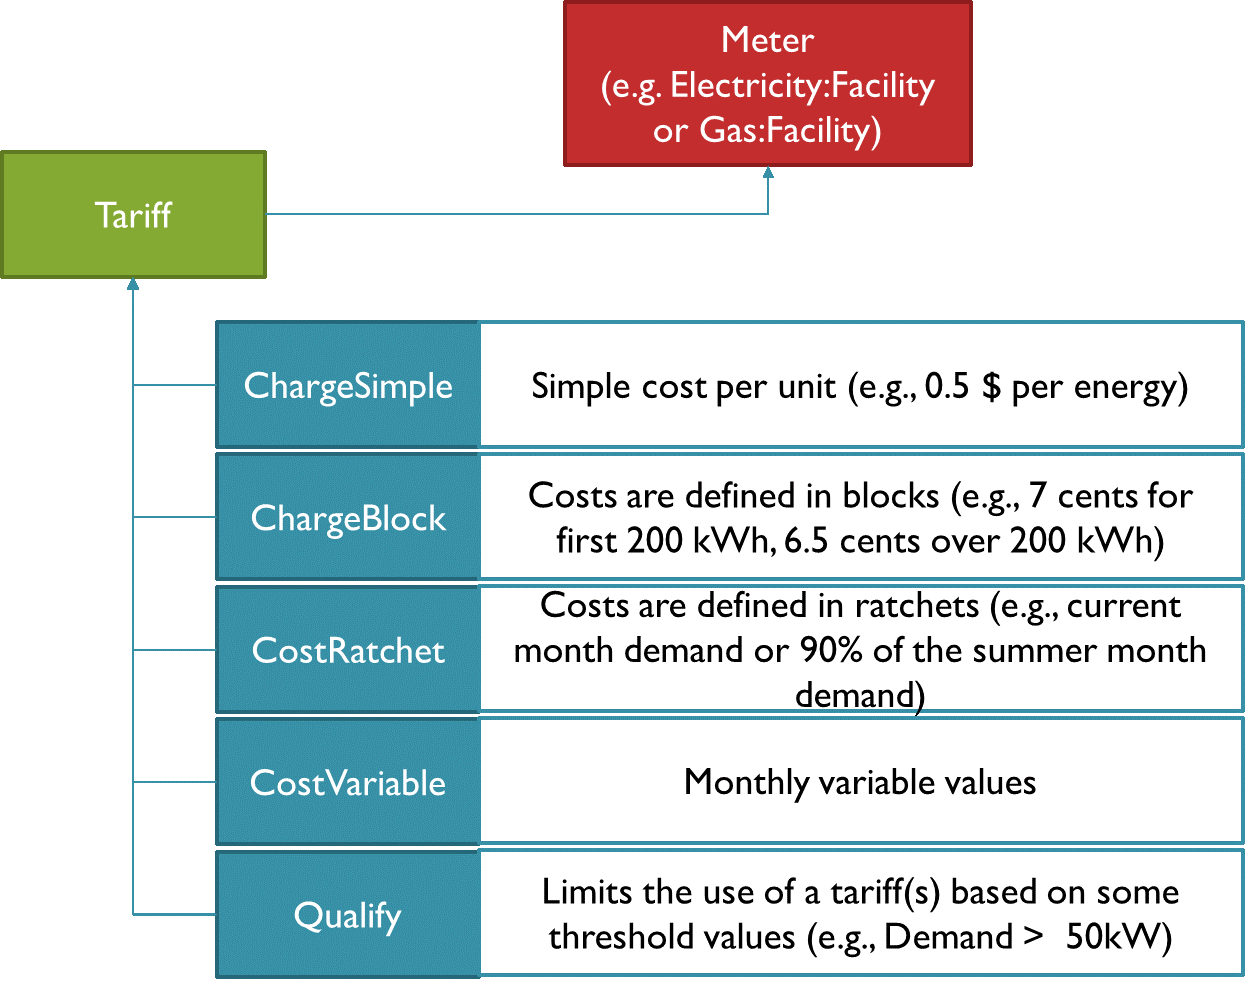 Figure 2: Utility cost objects